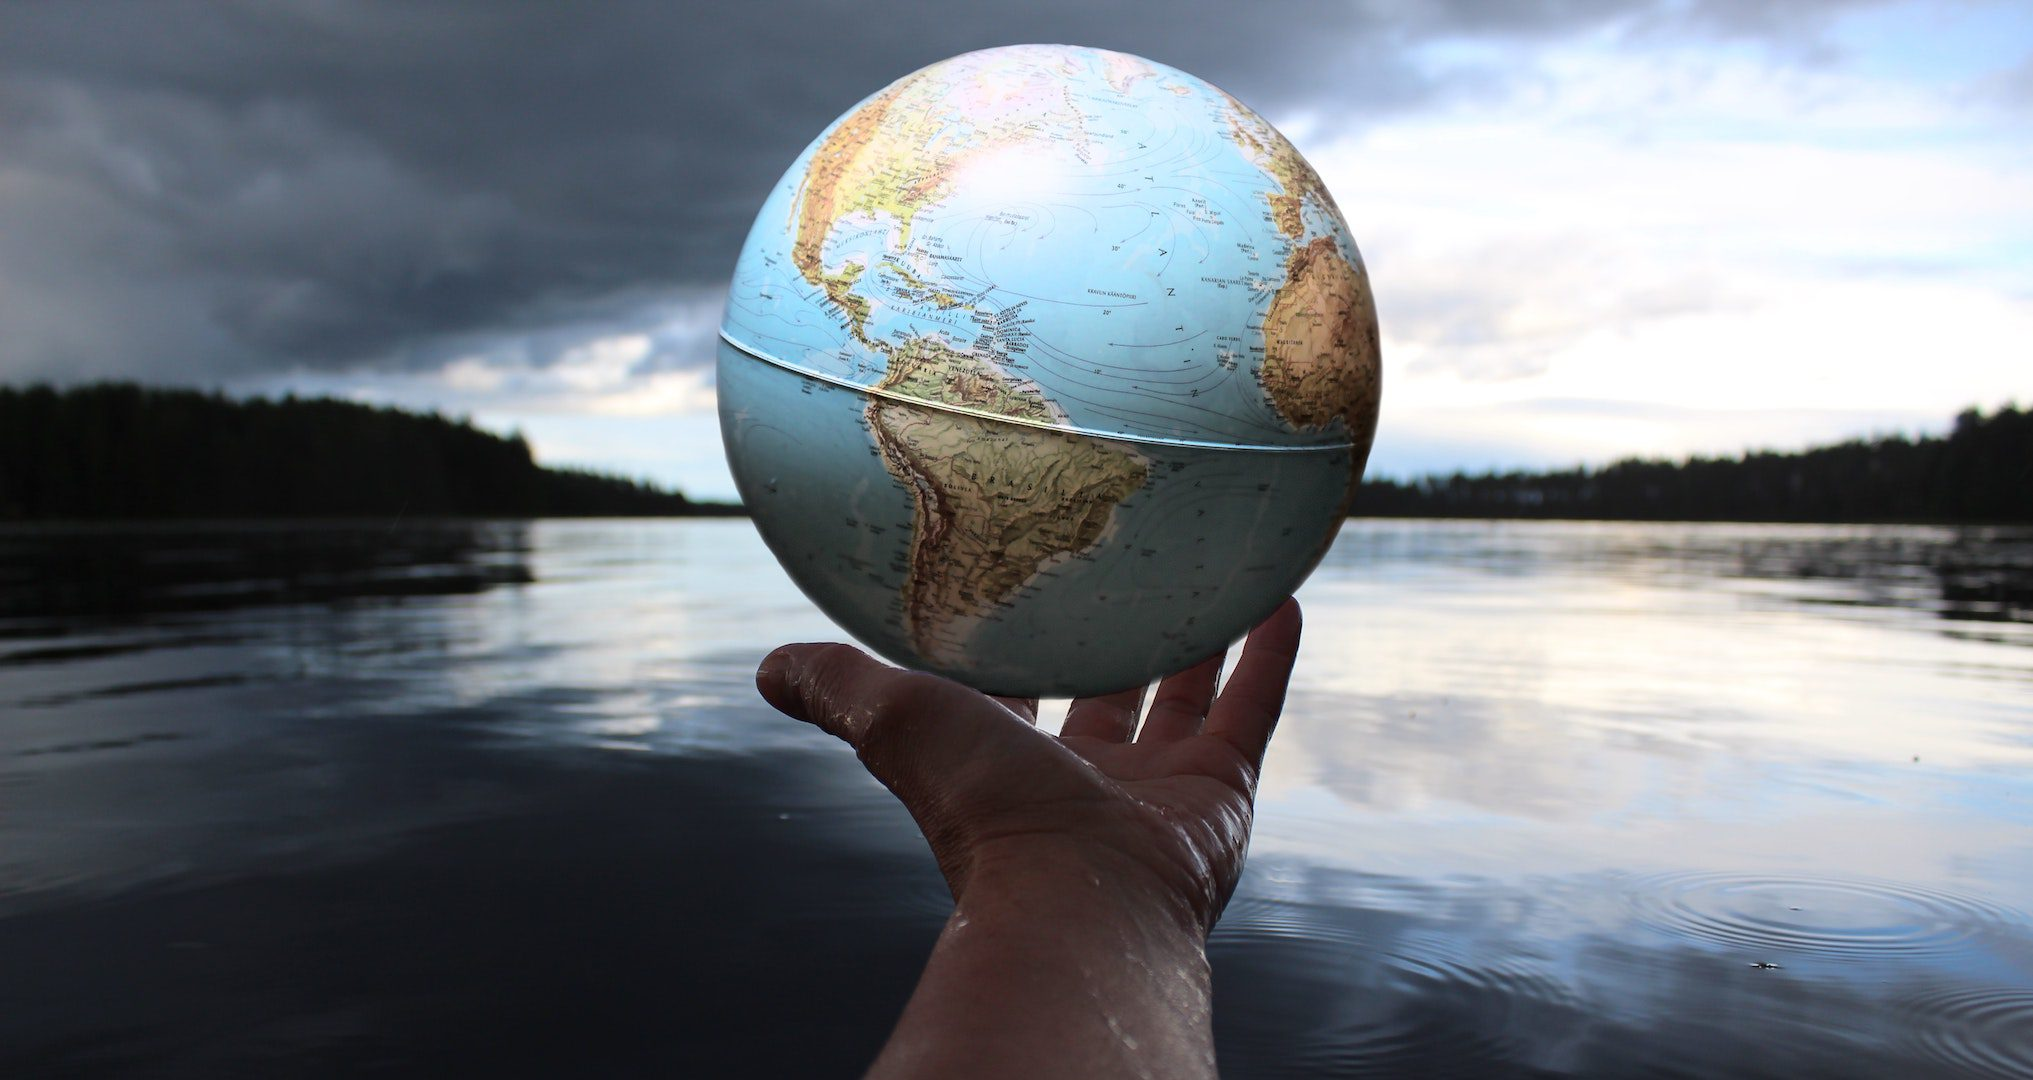 person holding a globe in the palm of their hand with a lake in the background